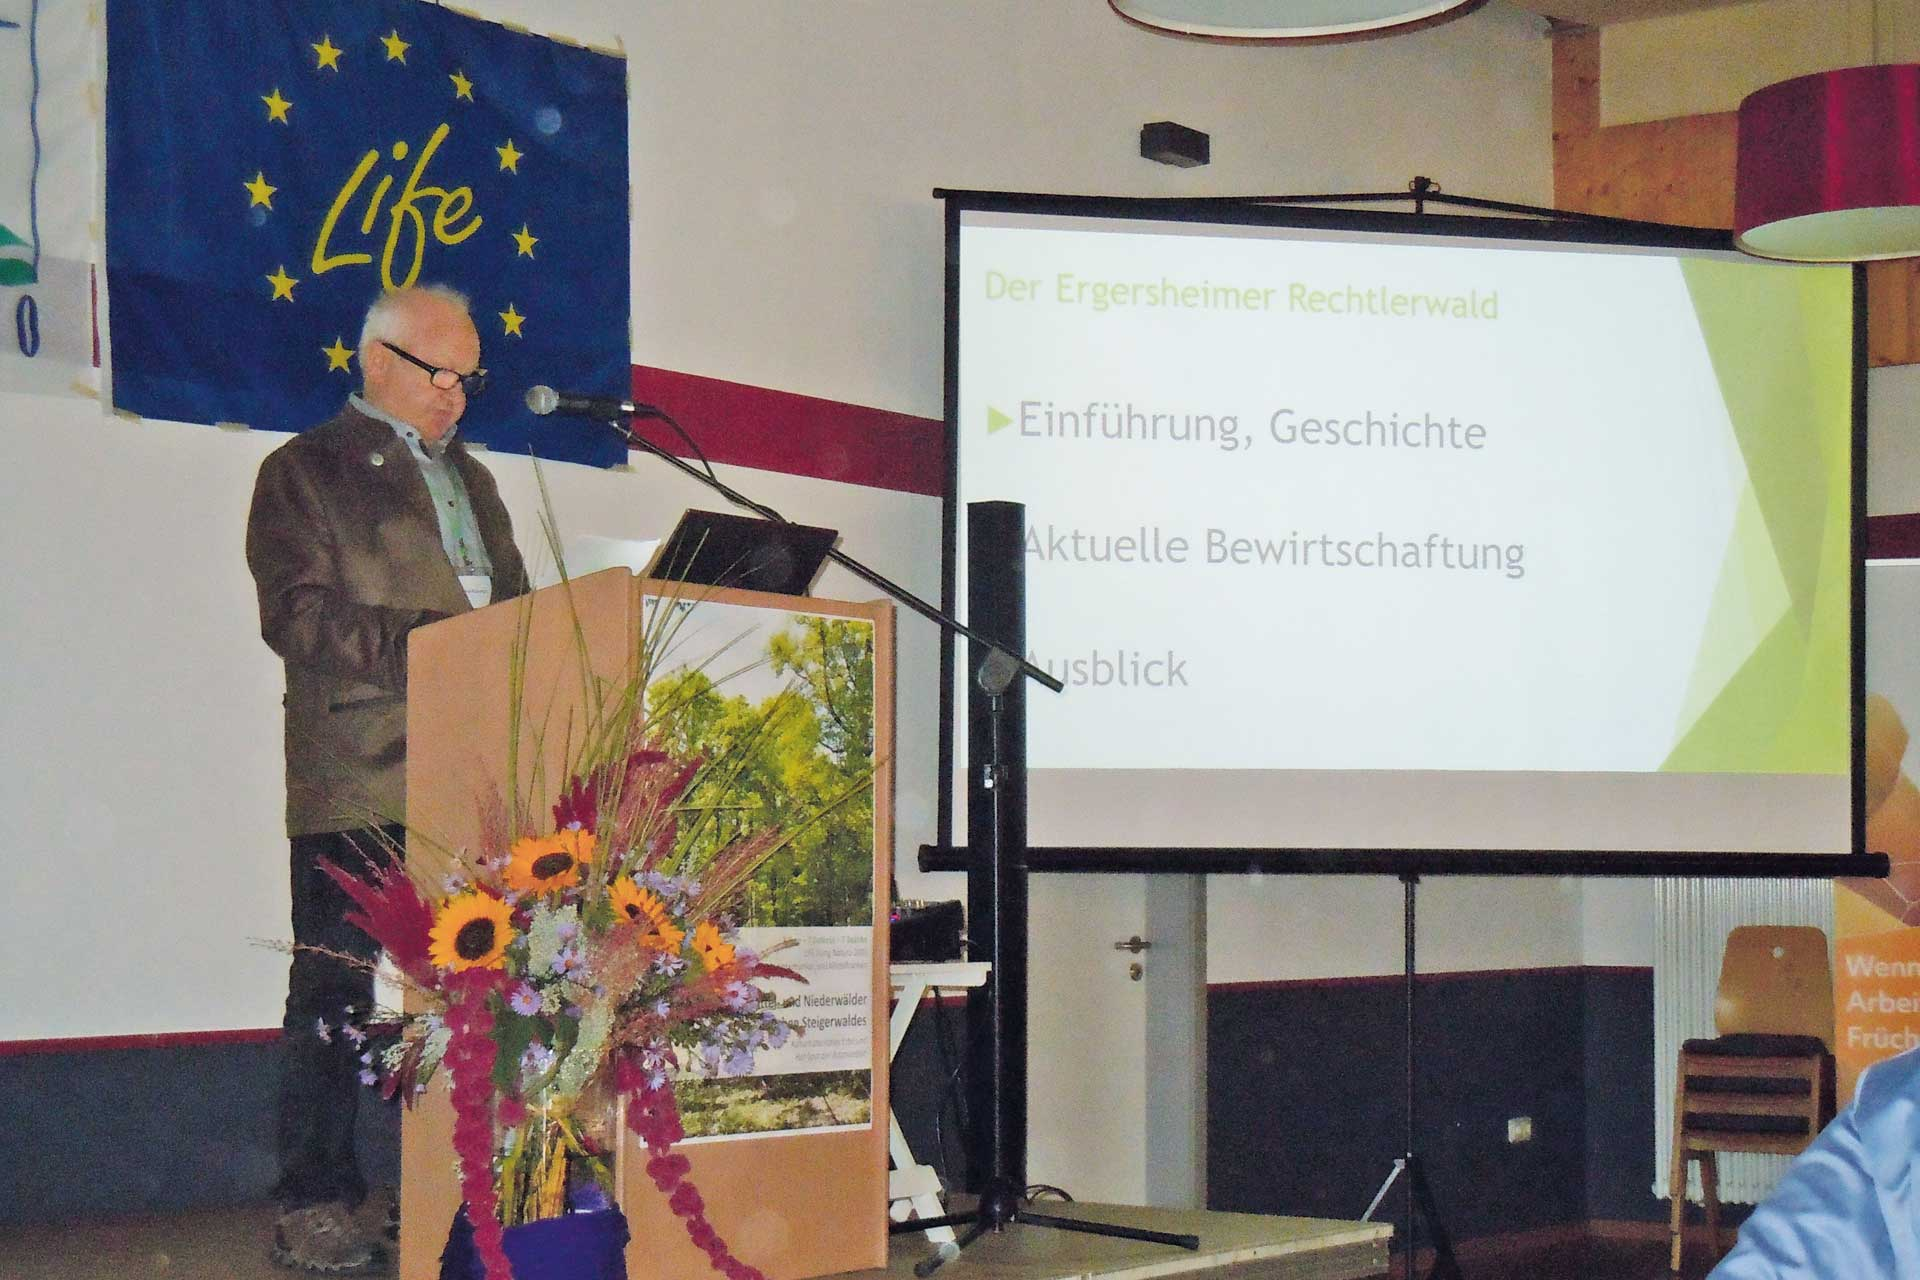 Speech at the event of the districts of Lower and Middle Franconia. Bildautor: ANL.